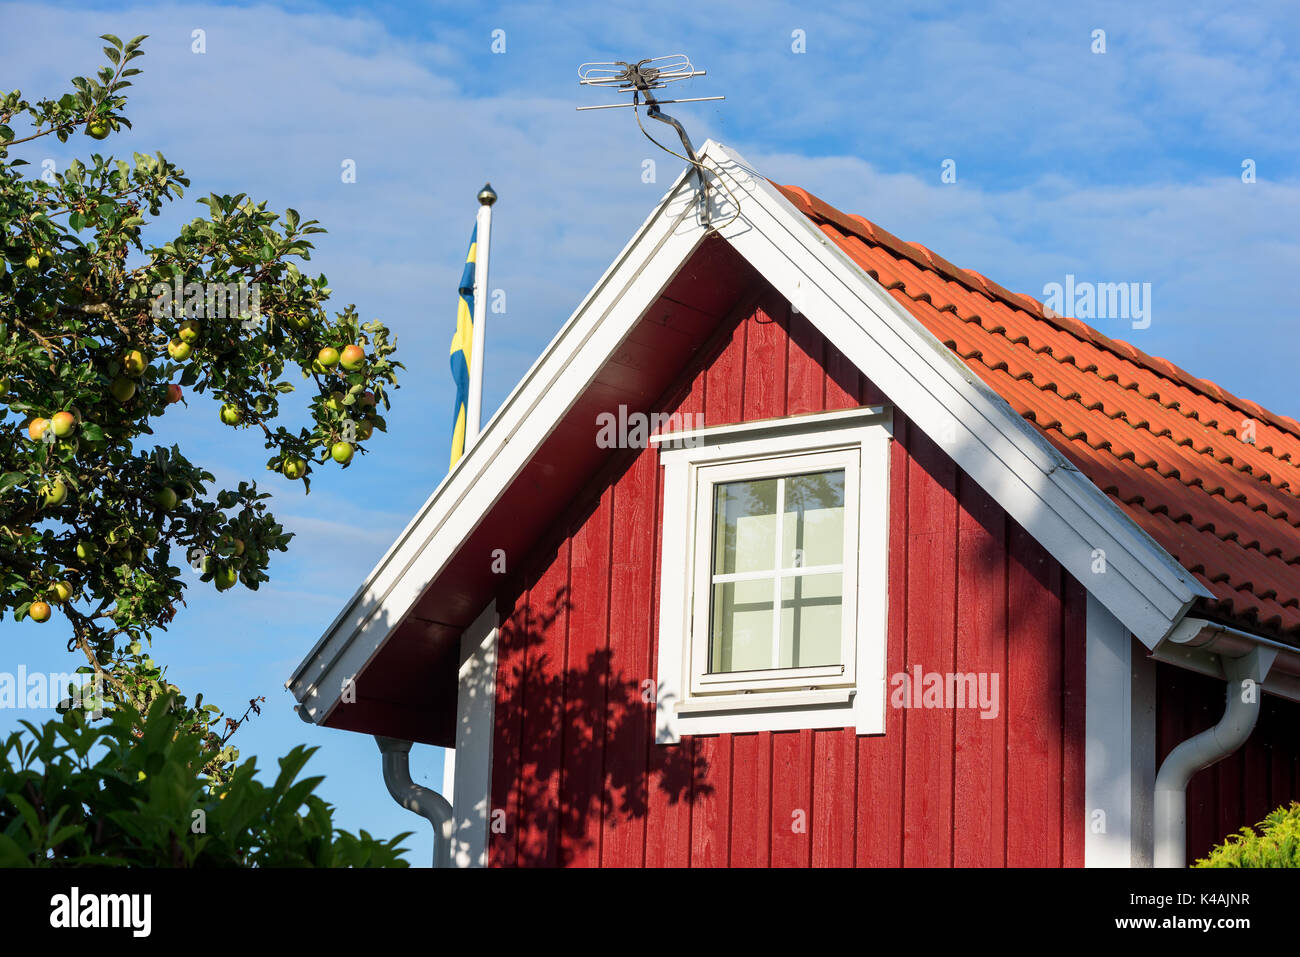 Top part of a red and white cottage gable with tv antenna on the wall. Apple tree beside the window and a flagpole with Swedish flag behind. - Stock Image